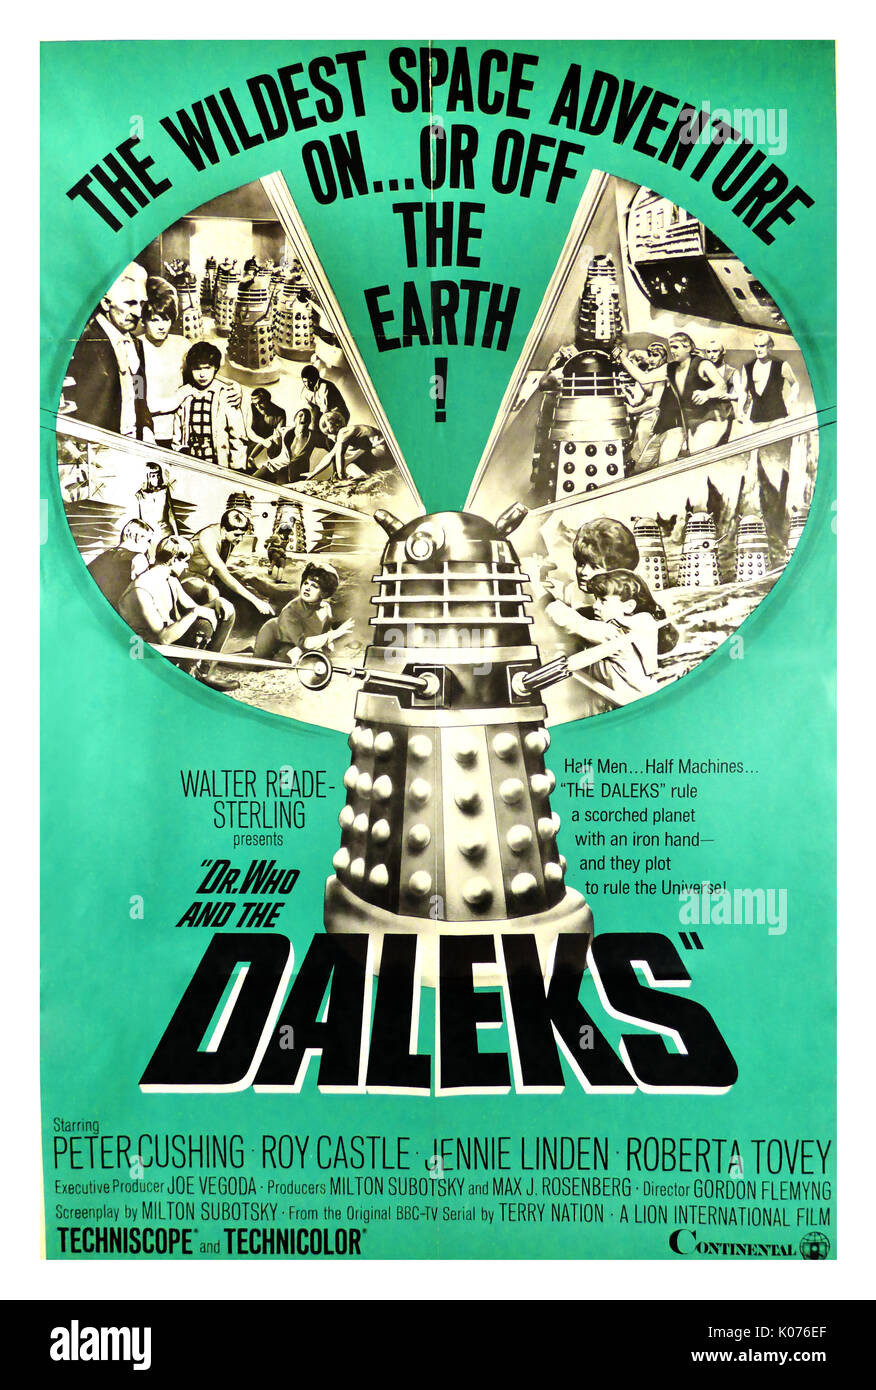 """DR. WHO AND THE DALEKS, 1965. Original Vintage Movie Poster starring Peter Cushing, Roy Castle and Jennie Linden. Directed by Gordon Fleming this movie brought BBC's low budget, sci-fi TV series to the big screen. """"The wildest space adventure on …or off the earth! Half men…half machine the Daleks rule a scorched planet with an iron hand and they plot to rule the universe"""". - Stock Image"""